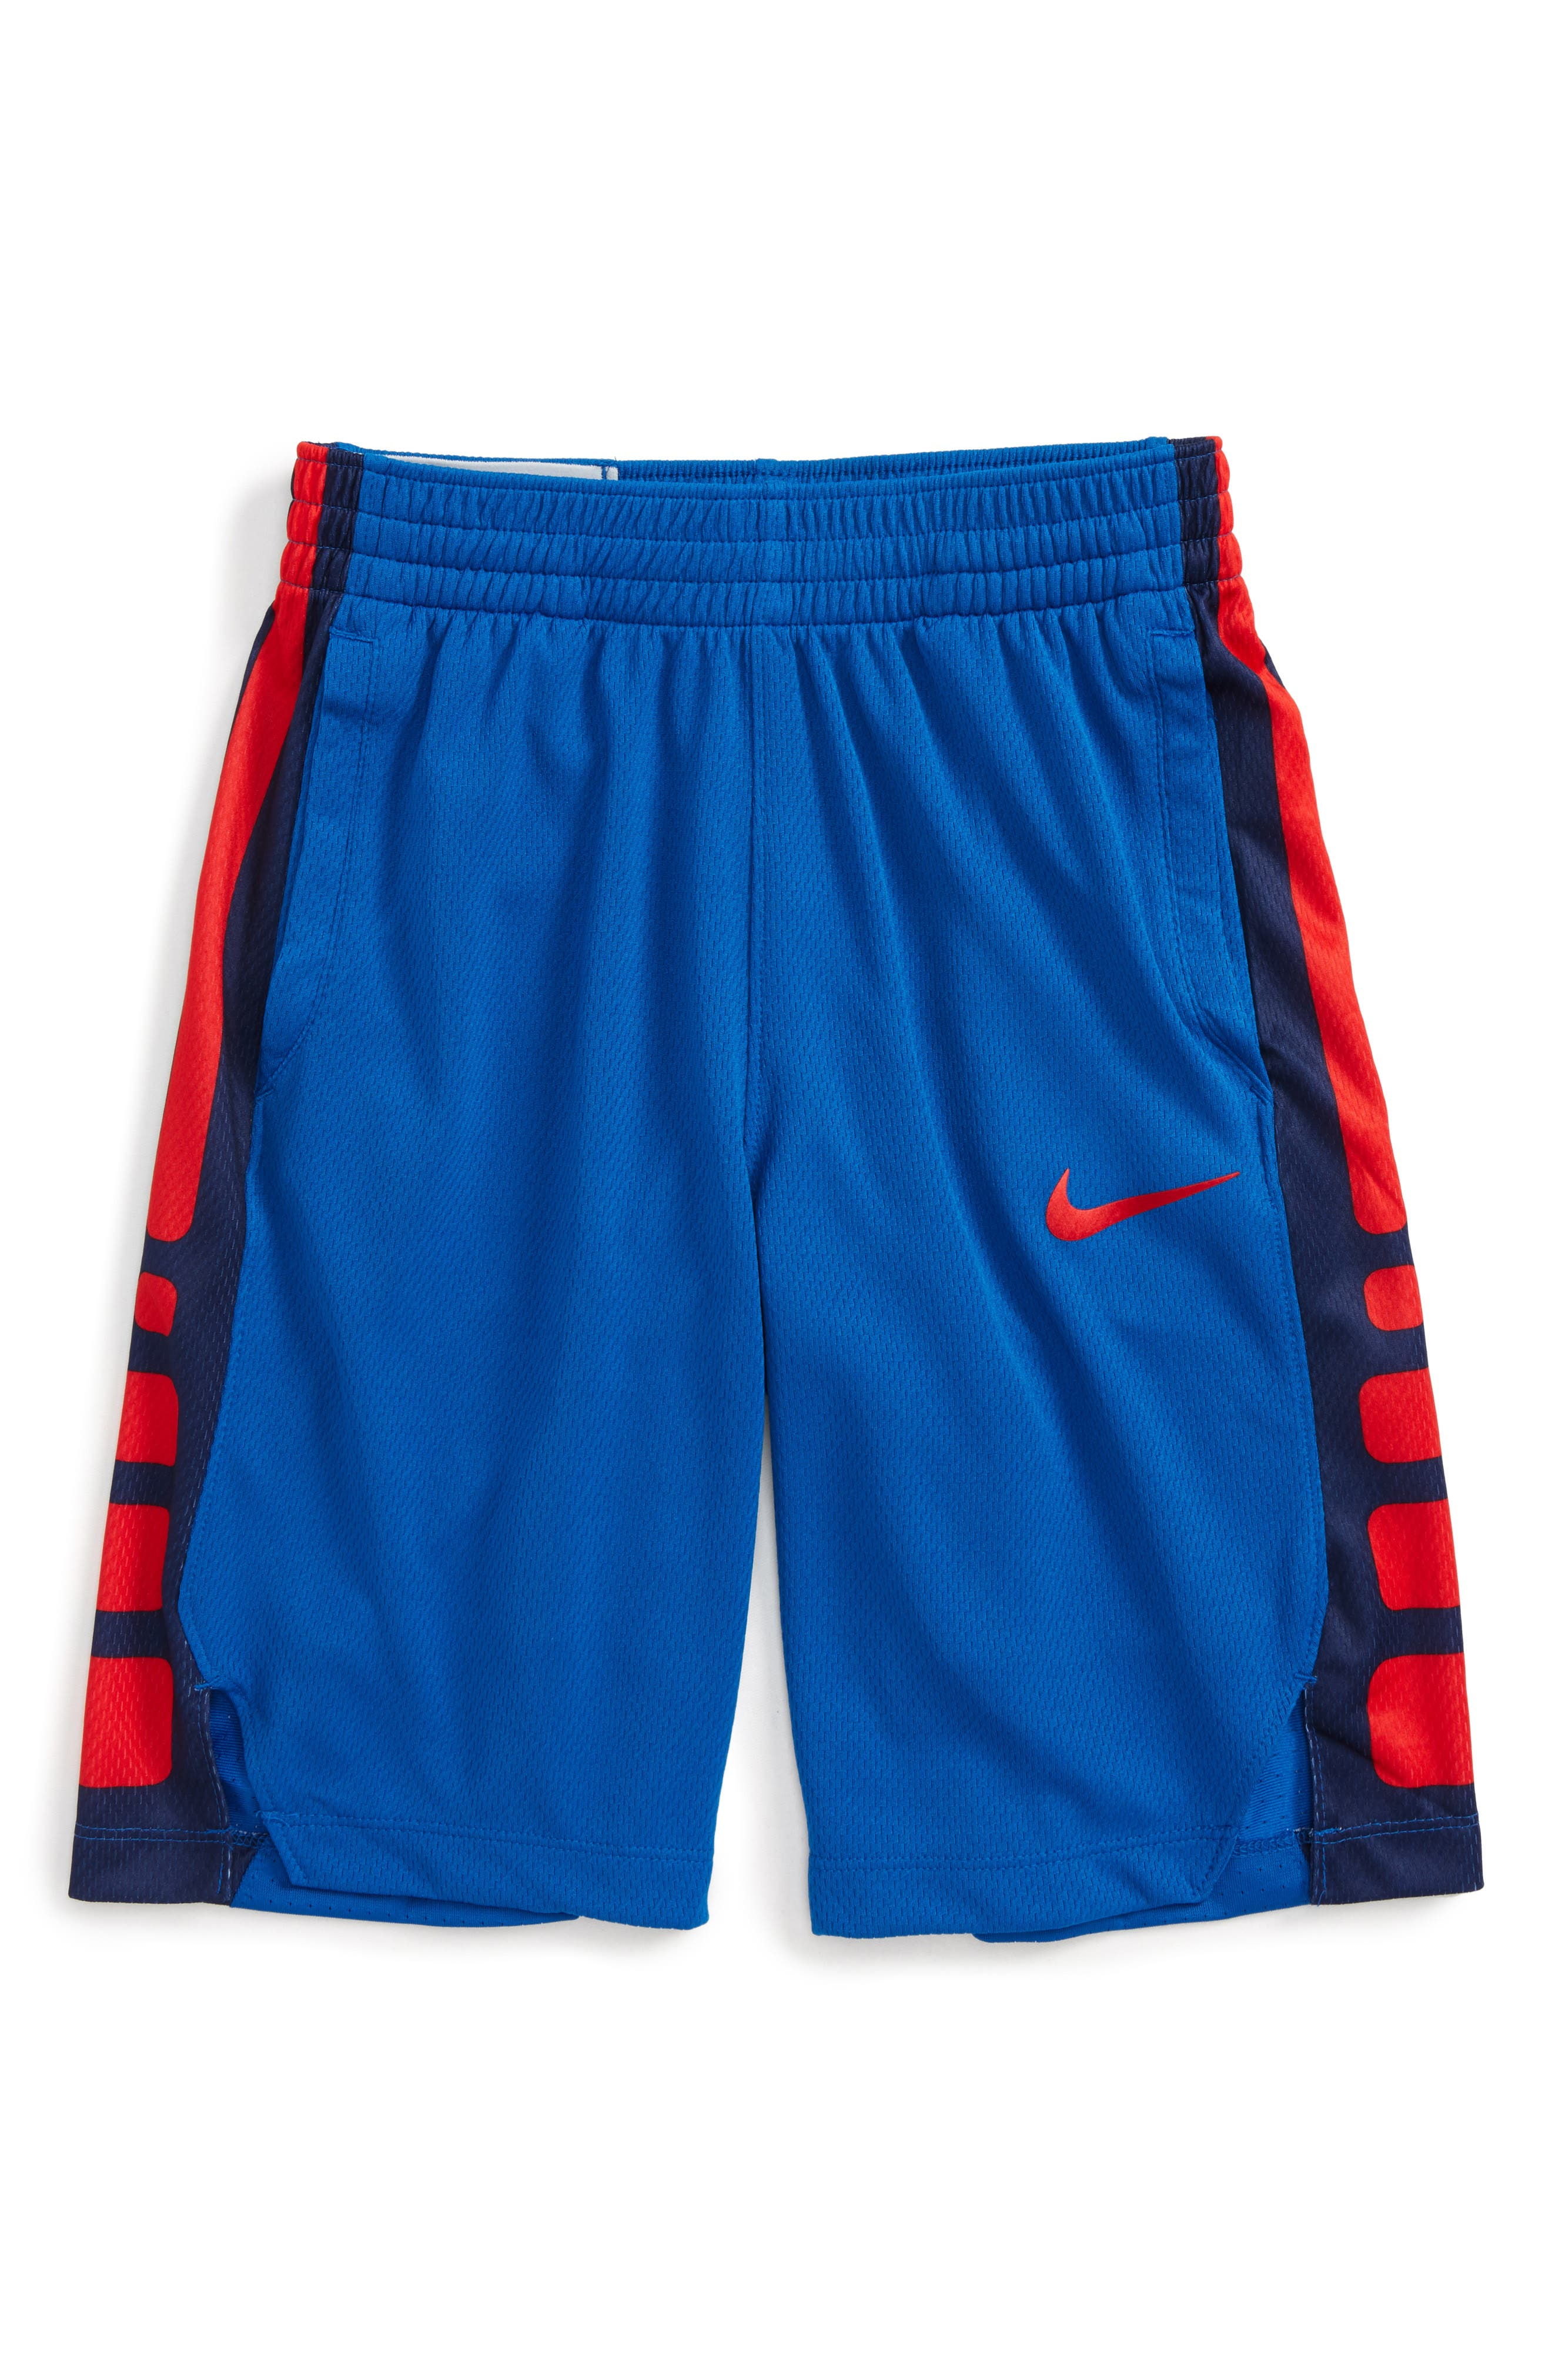 Dry Elite Basketball Shorts,                             Main thumbnail 38, color,